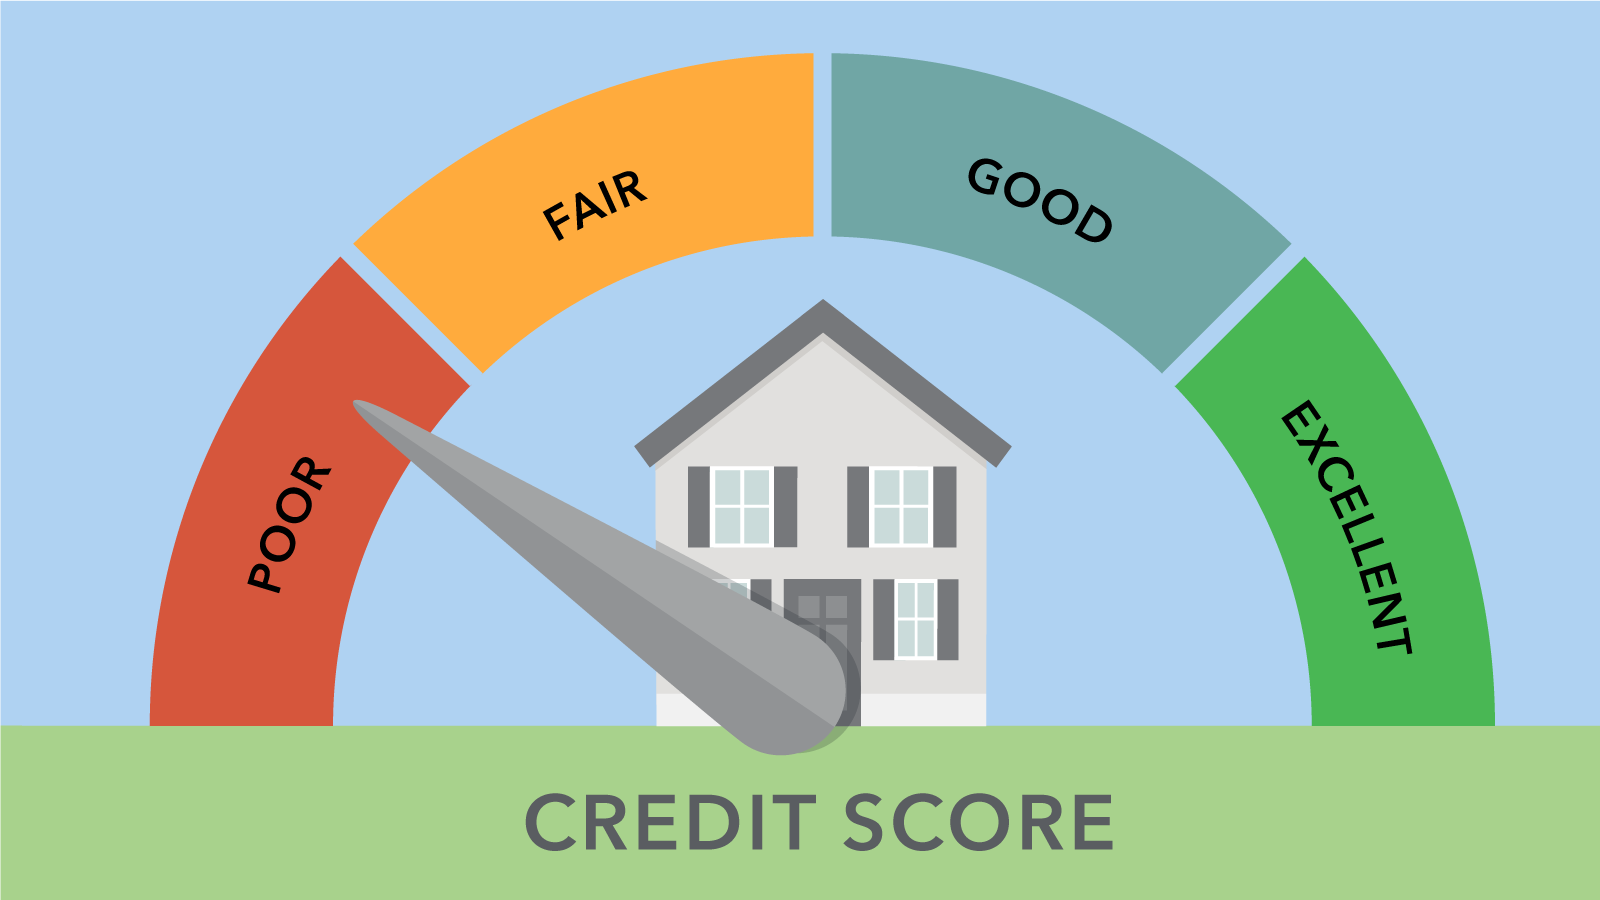 Loans For Bad Credit With Monthly Payments >> 7 Super Useful Tips to Clear Up Your Credit Score Trouble ...